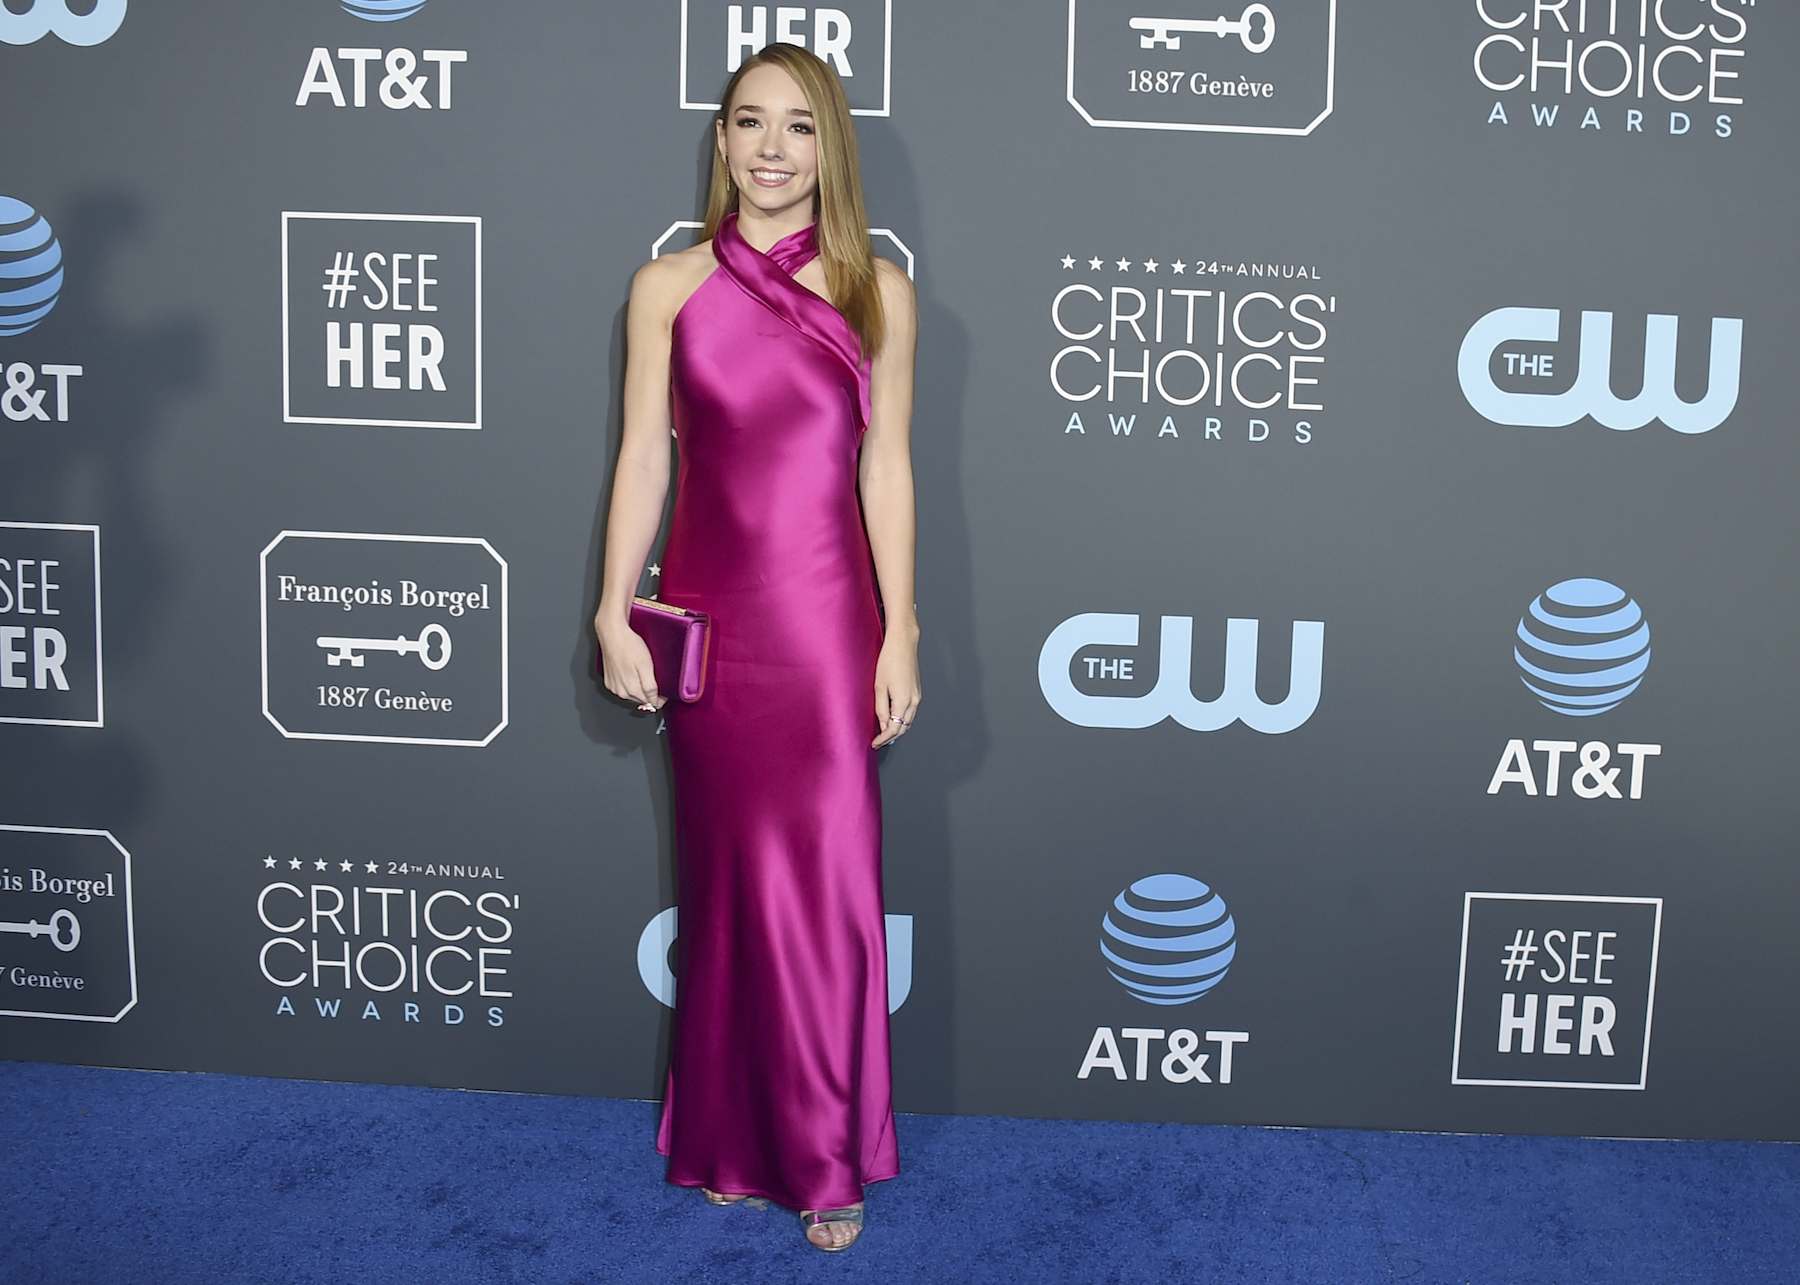 <div class='meta'><div class='origin-logo' data-origin='AP'></div><span class='caption-text' data-credit='Jordan Strauss/Invision/AP'>Holly Taylor arrives at the 24th annual Critics' Choice Awards on Sunday, Jan. 13, 2019, at the Barker Hangar in Santa Monica, Calif.</span></div>